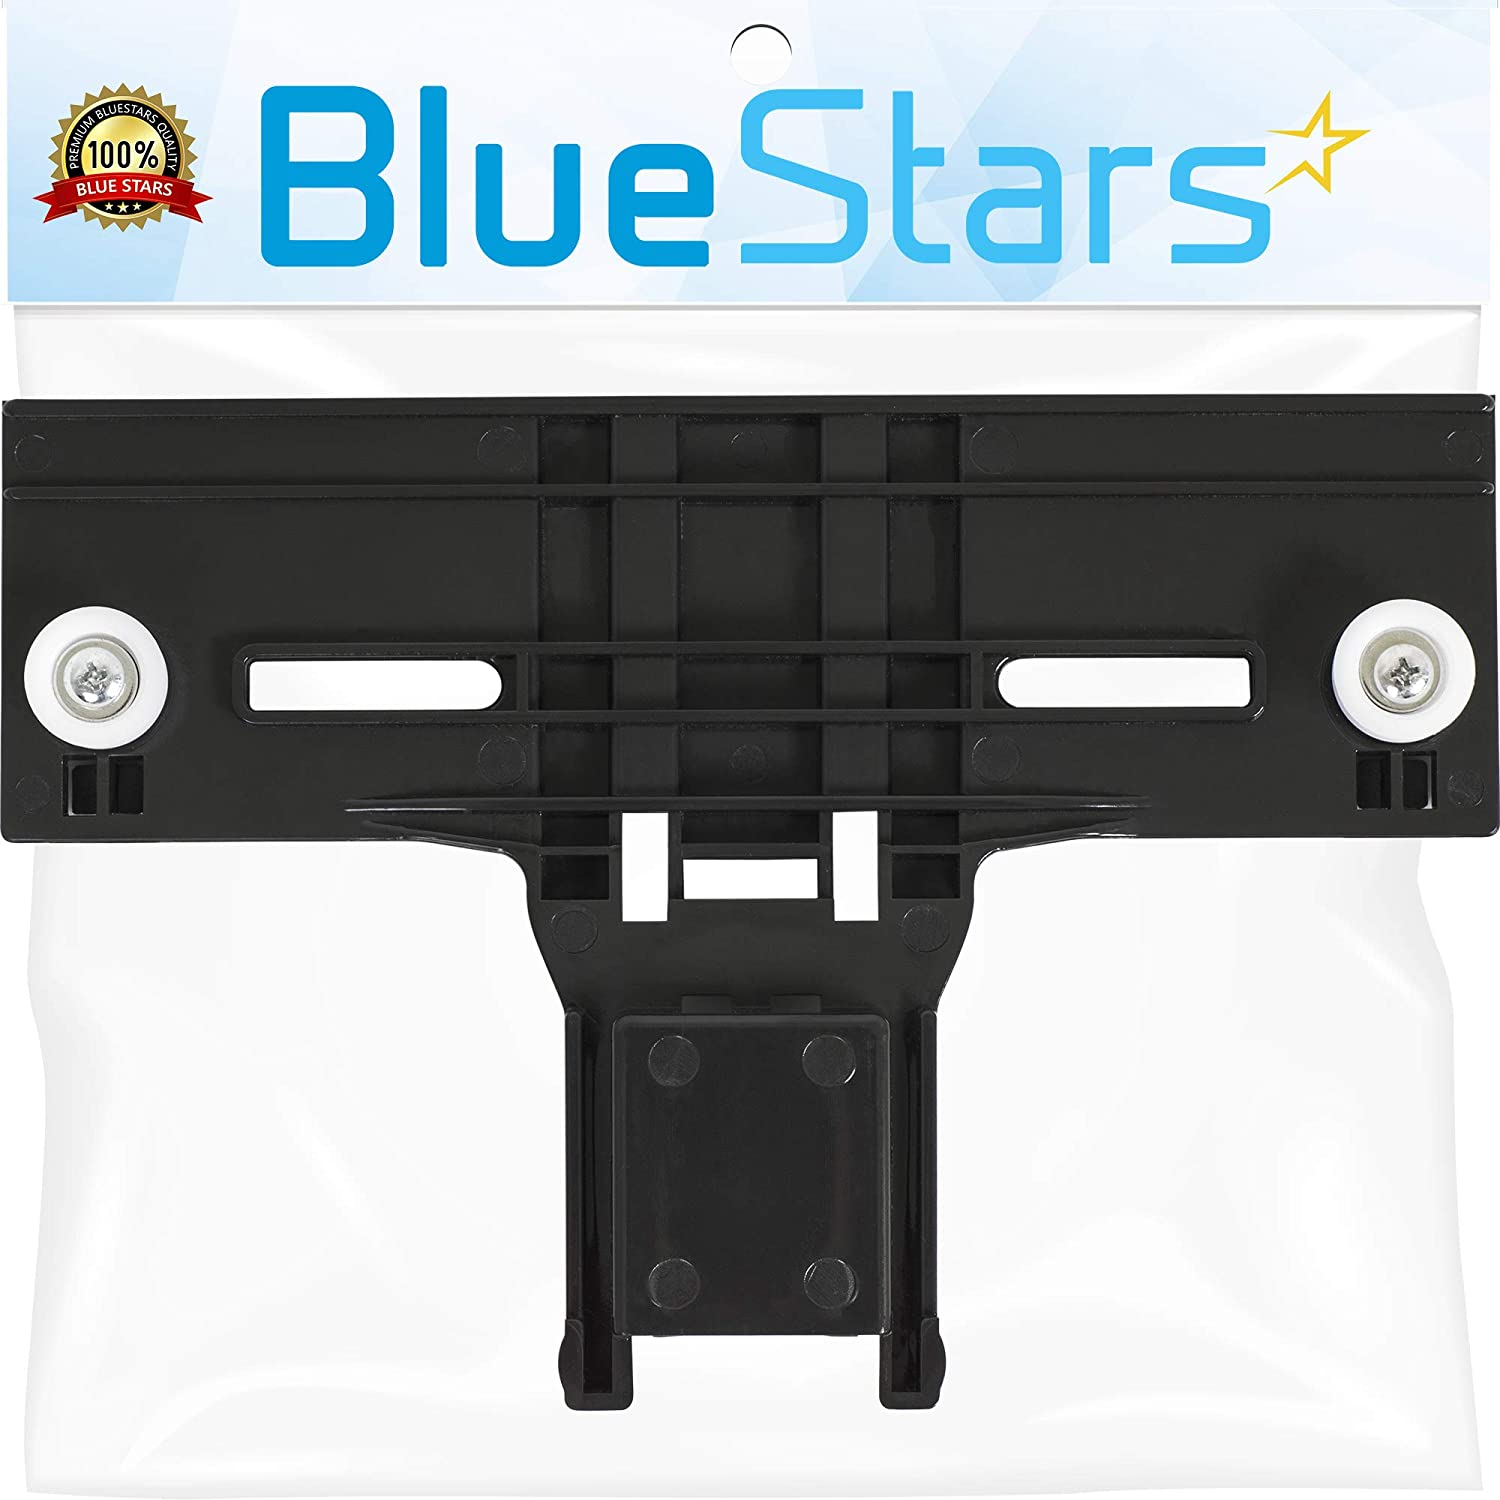 [ Upgraded ] Ultra Durable W10350376 Dishwasher Top Rack Adjuster Replacement Part by Blue Stars - Exact Fit for Kitchen Aid Kenmore Dishwasher - Enhanced Durability with Steel Screws